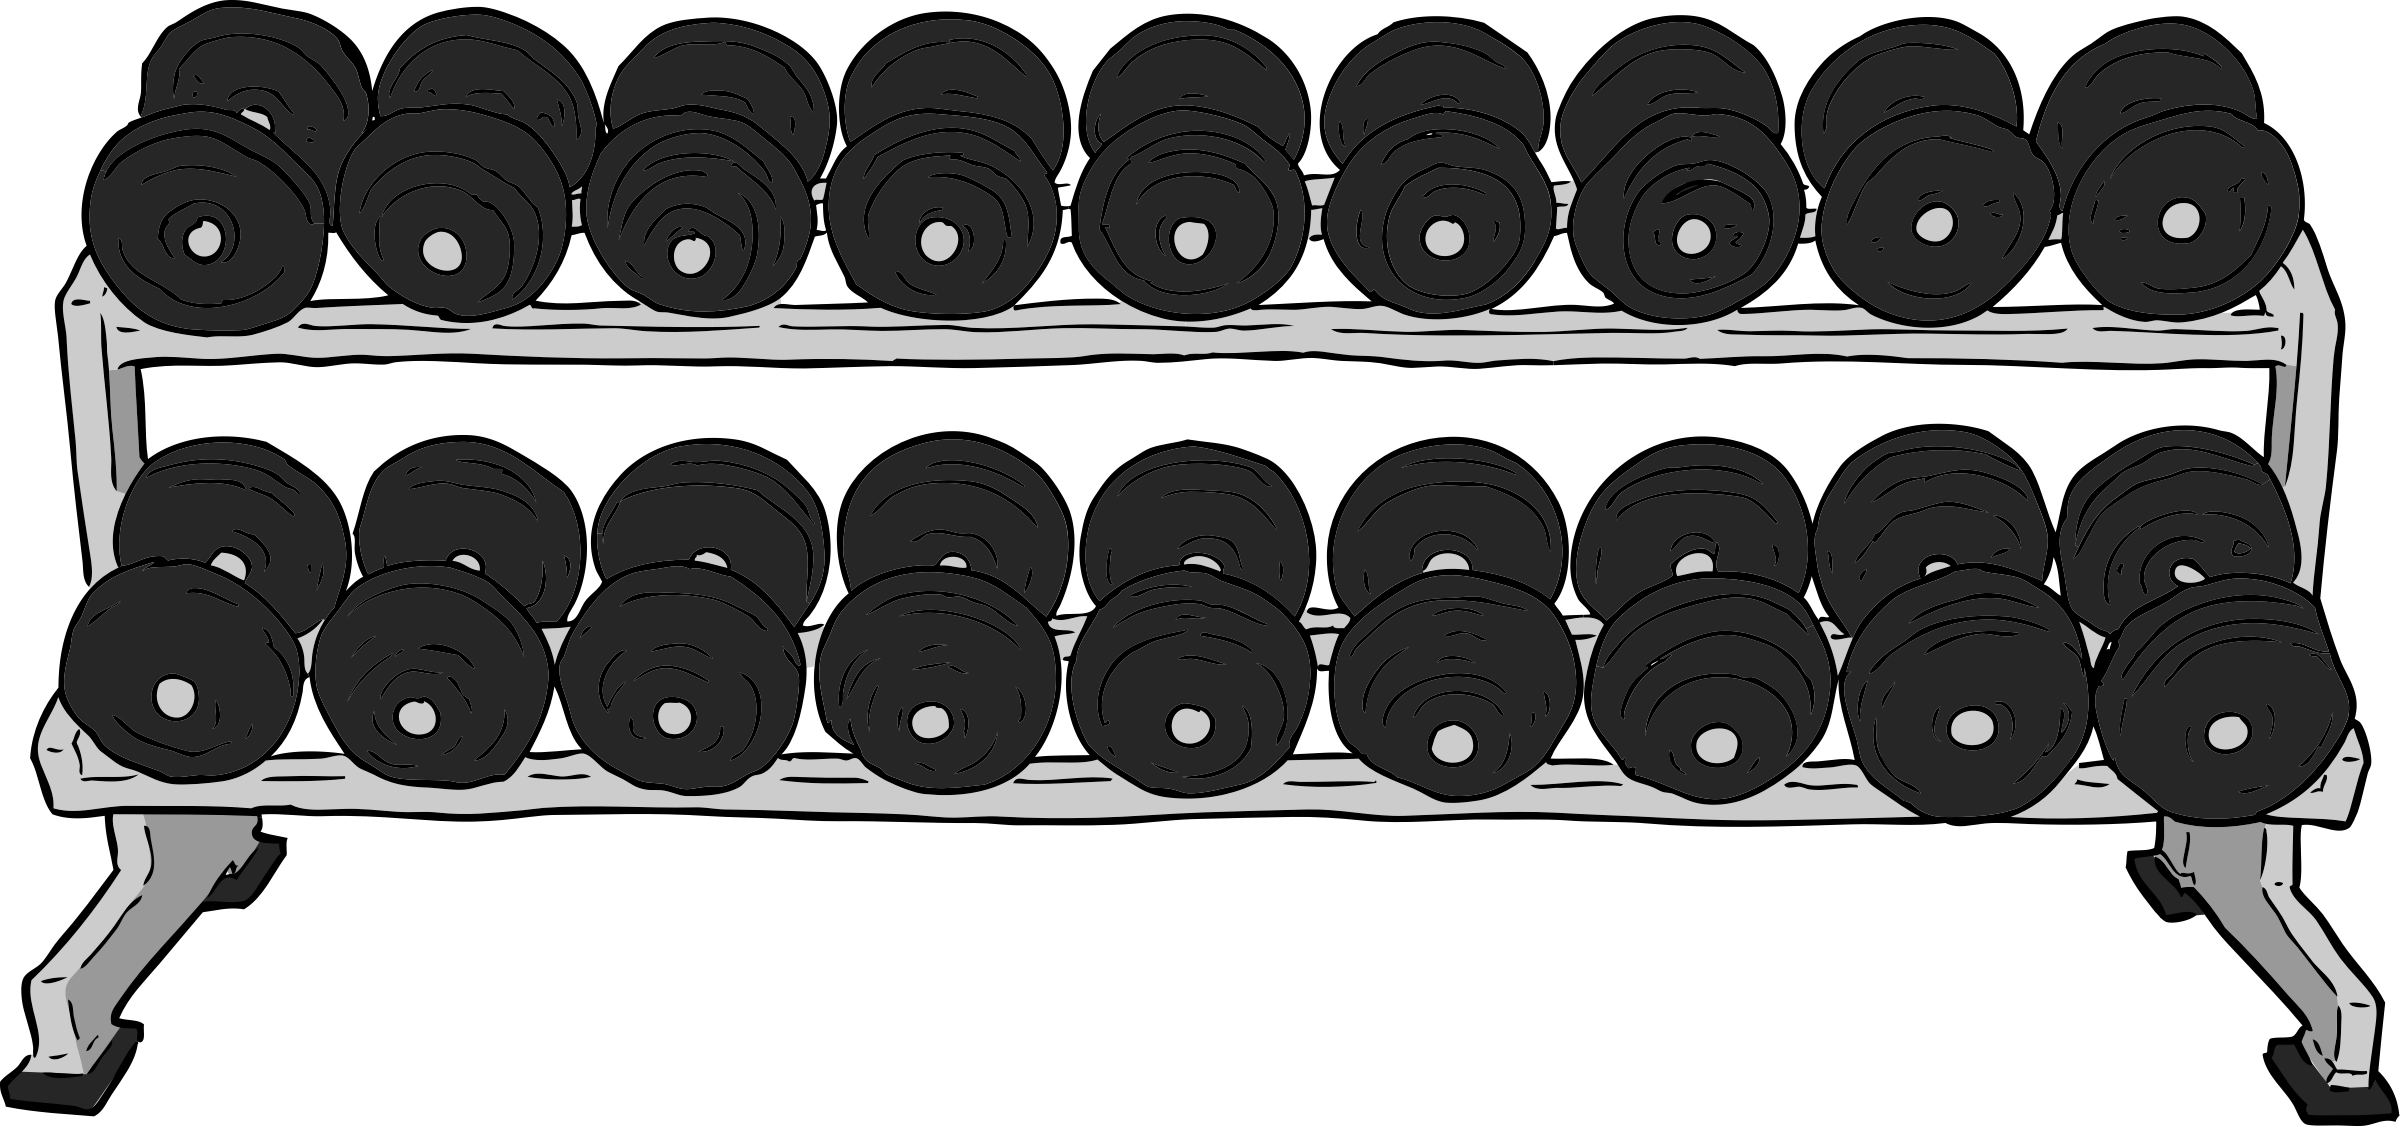 Weight clipart gym weight. Dumbell rack big image